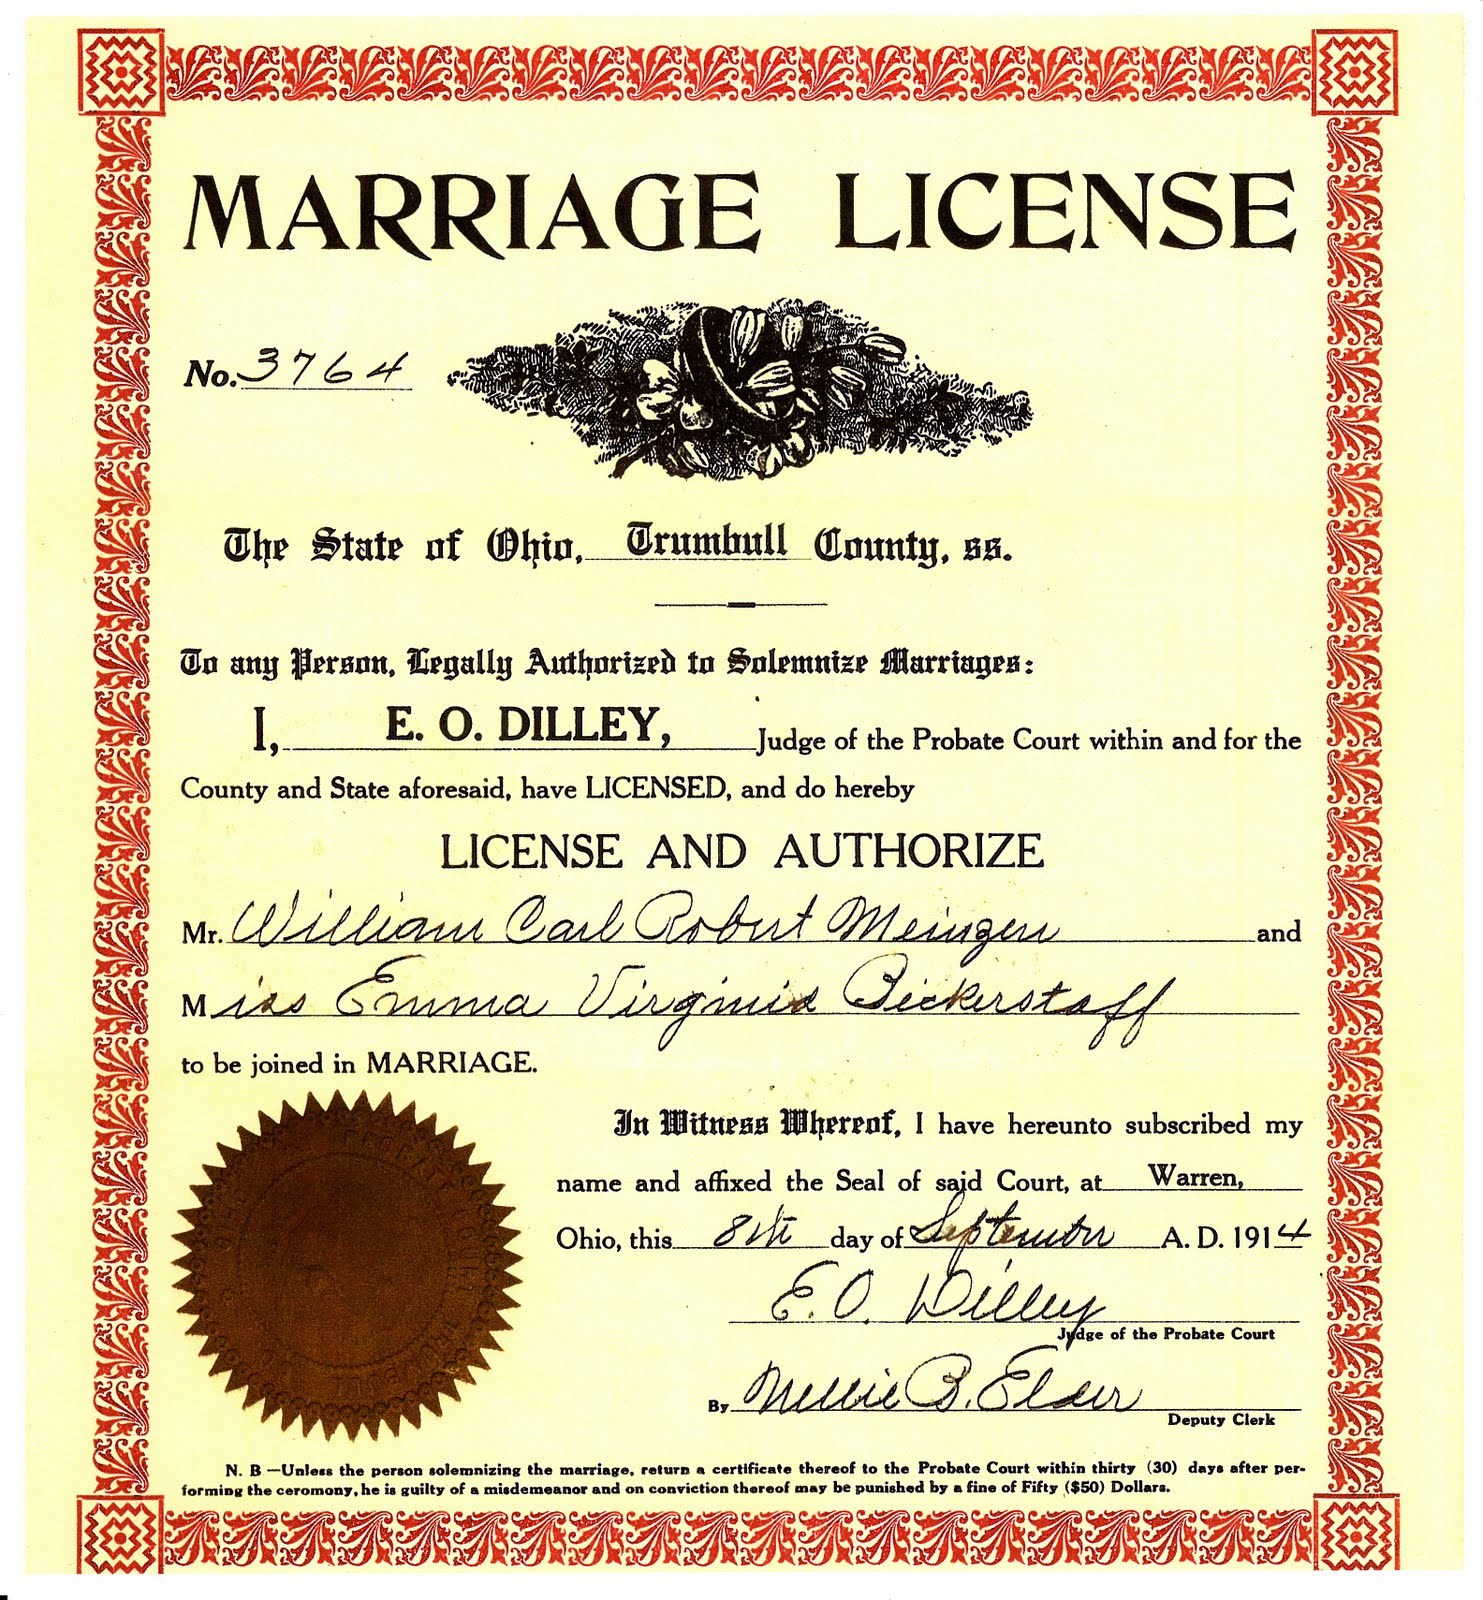 Wedding Certificate: My Ancestors And Me: Reviewing Marriage Records